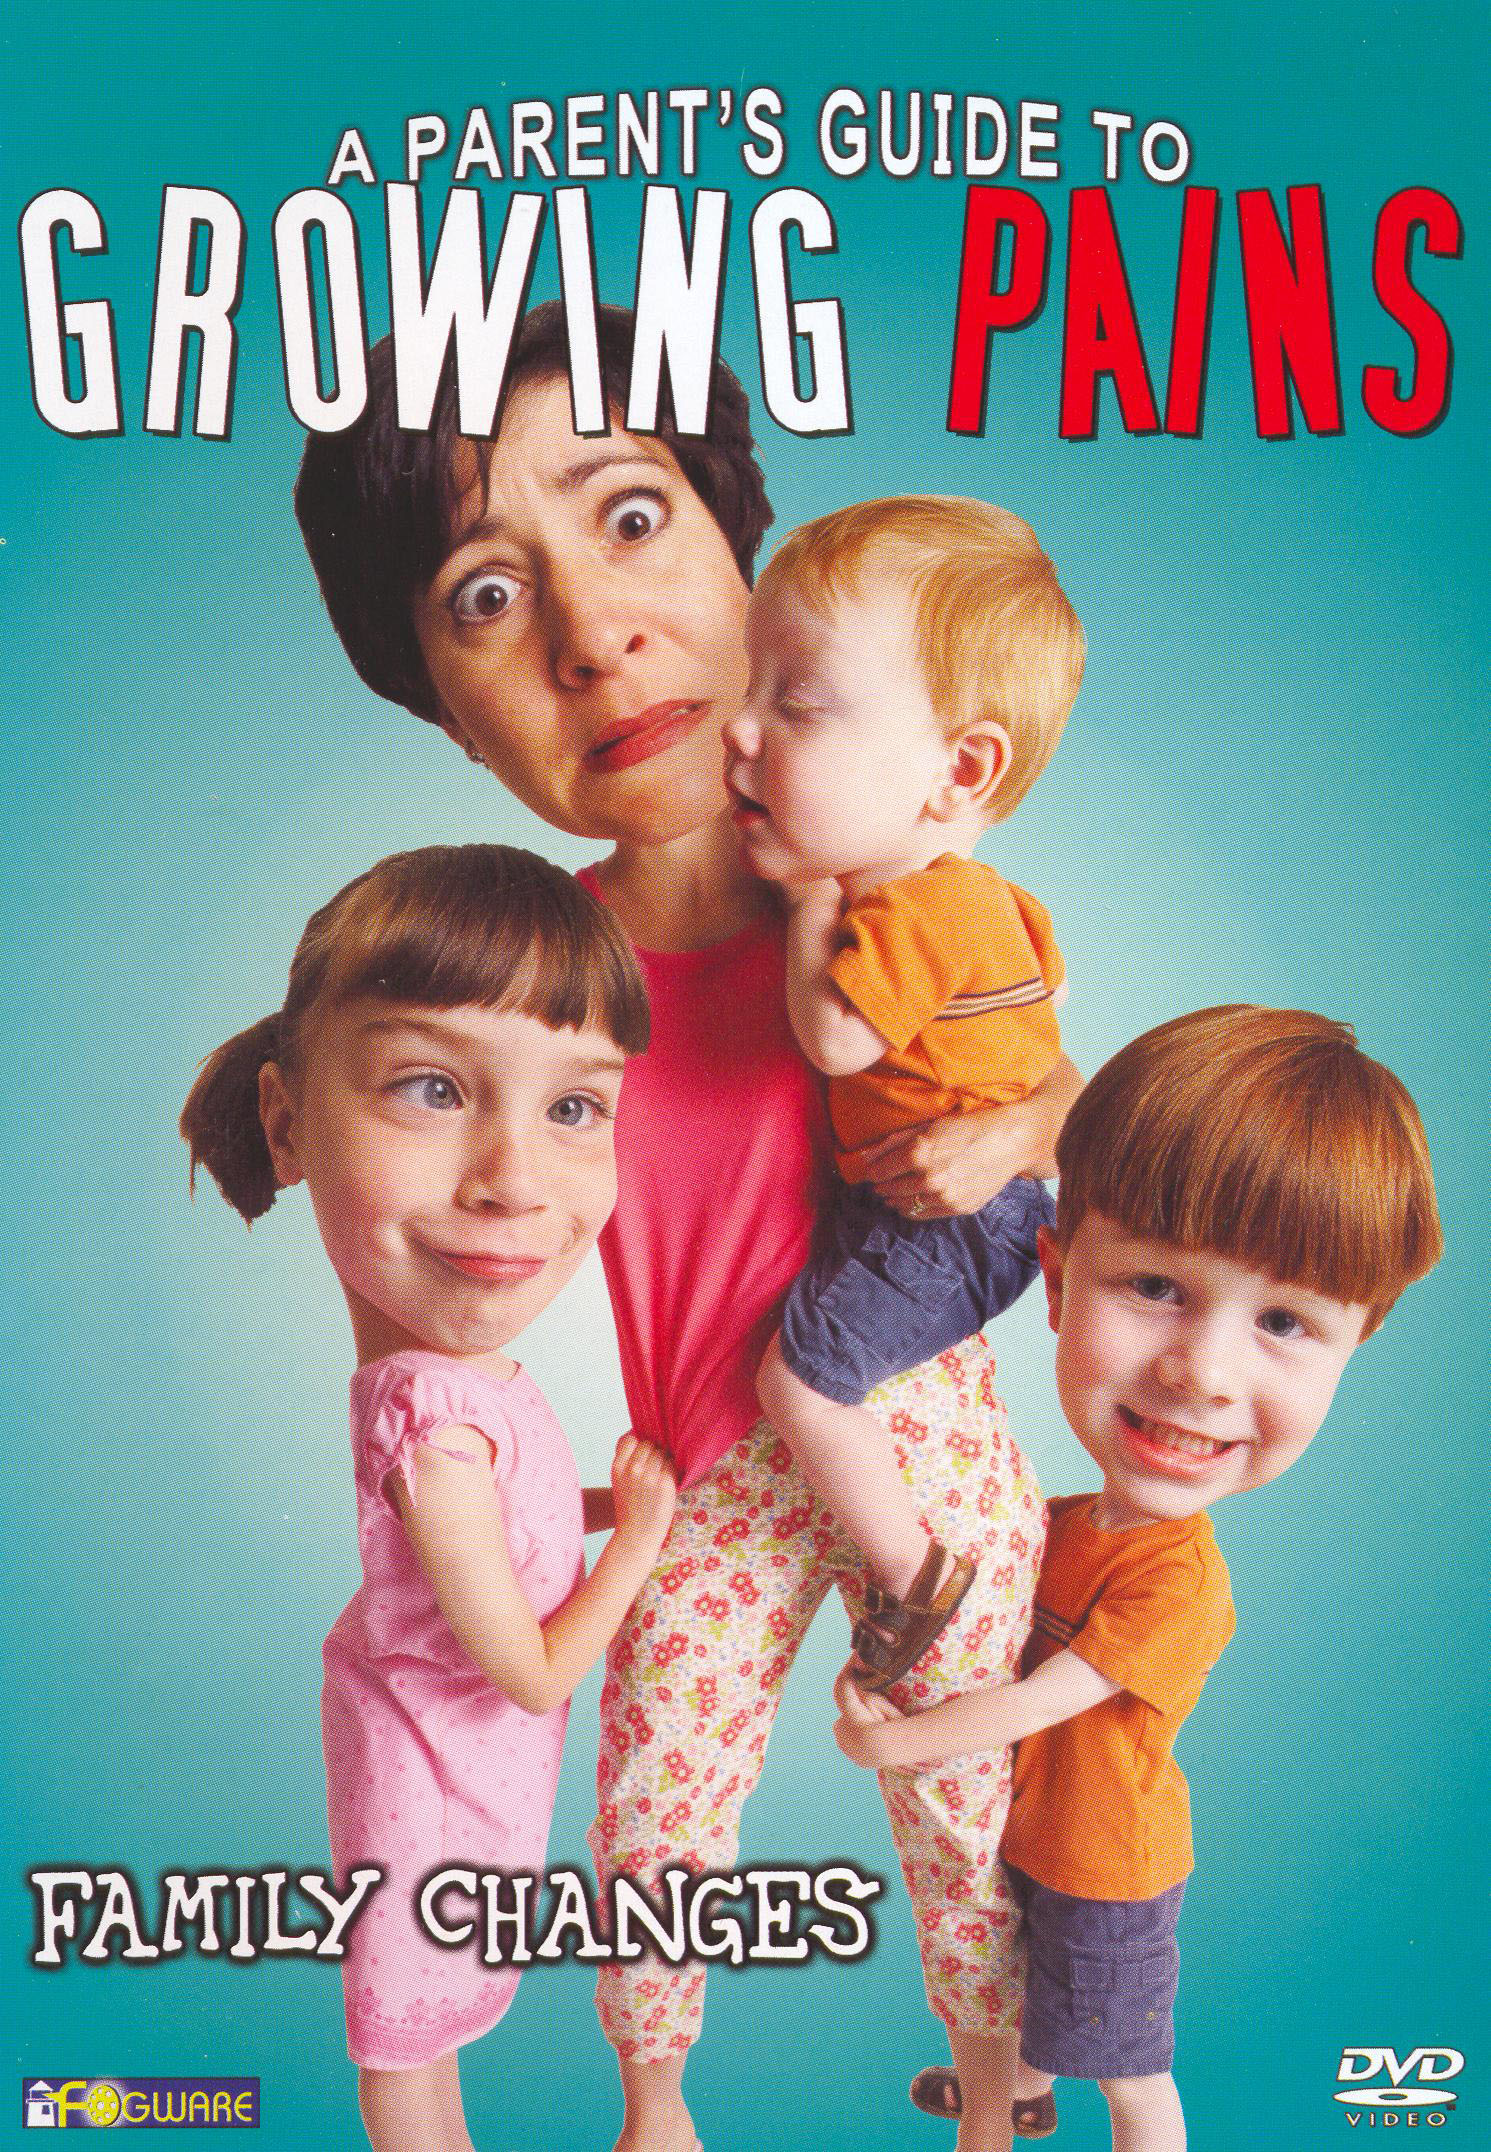 A Parent's Guide to Growing Pains: Family Changes